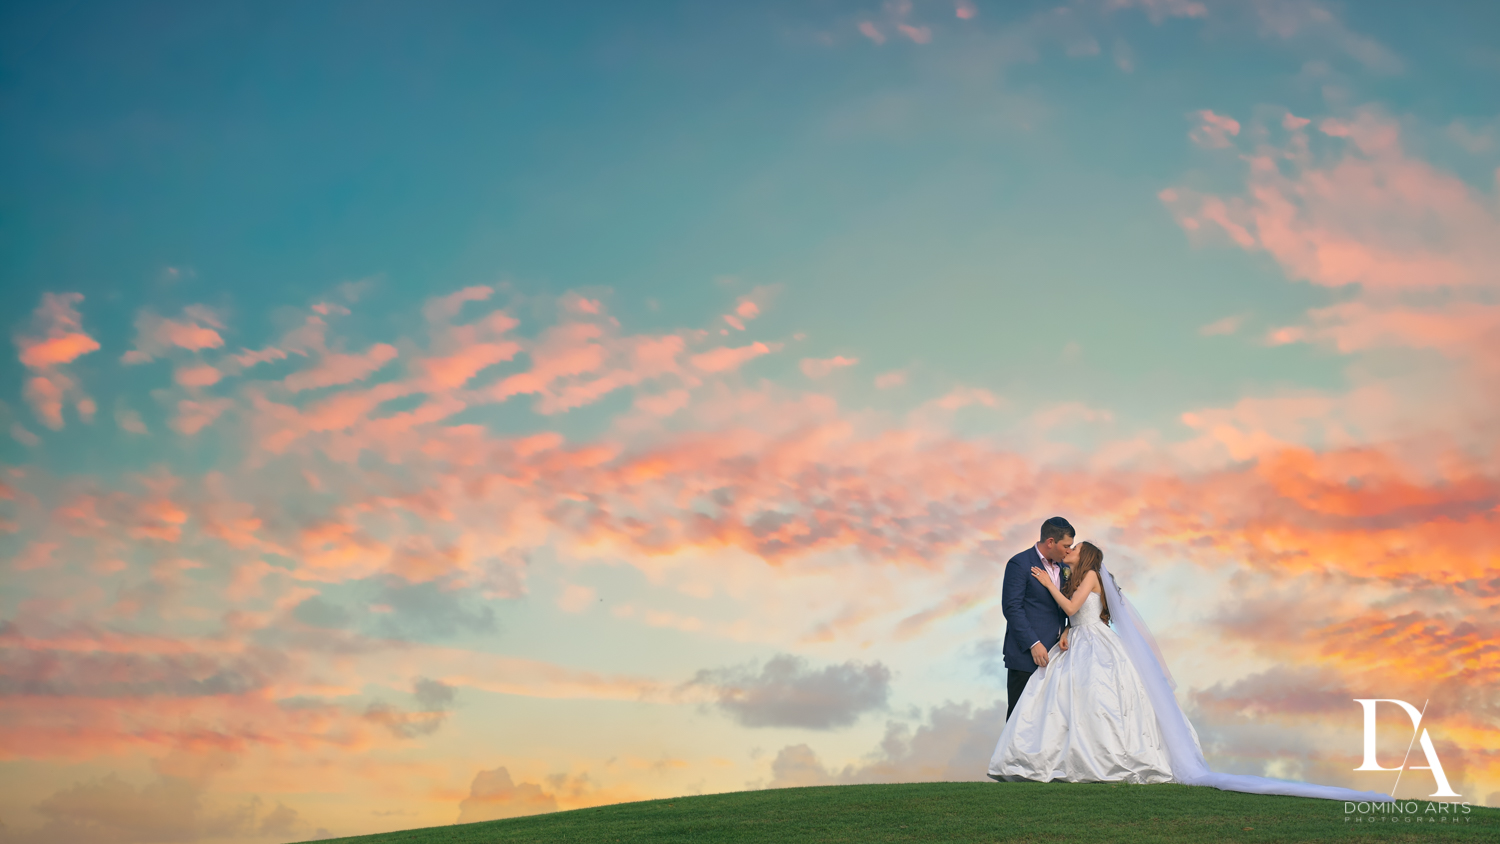 Sunset portrait at Beautiful Intimate Wedding at Mizner Country Club by Domino Arts Photography